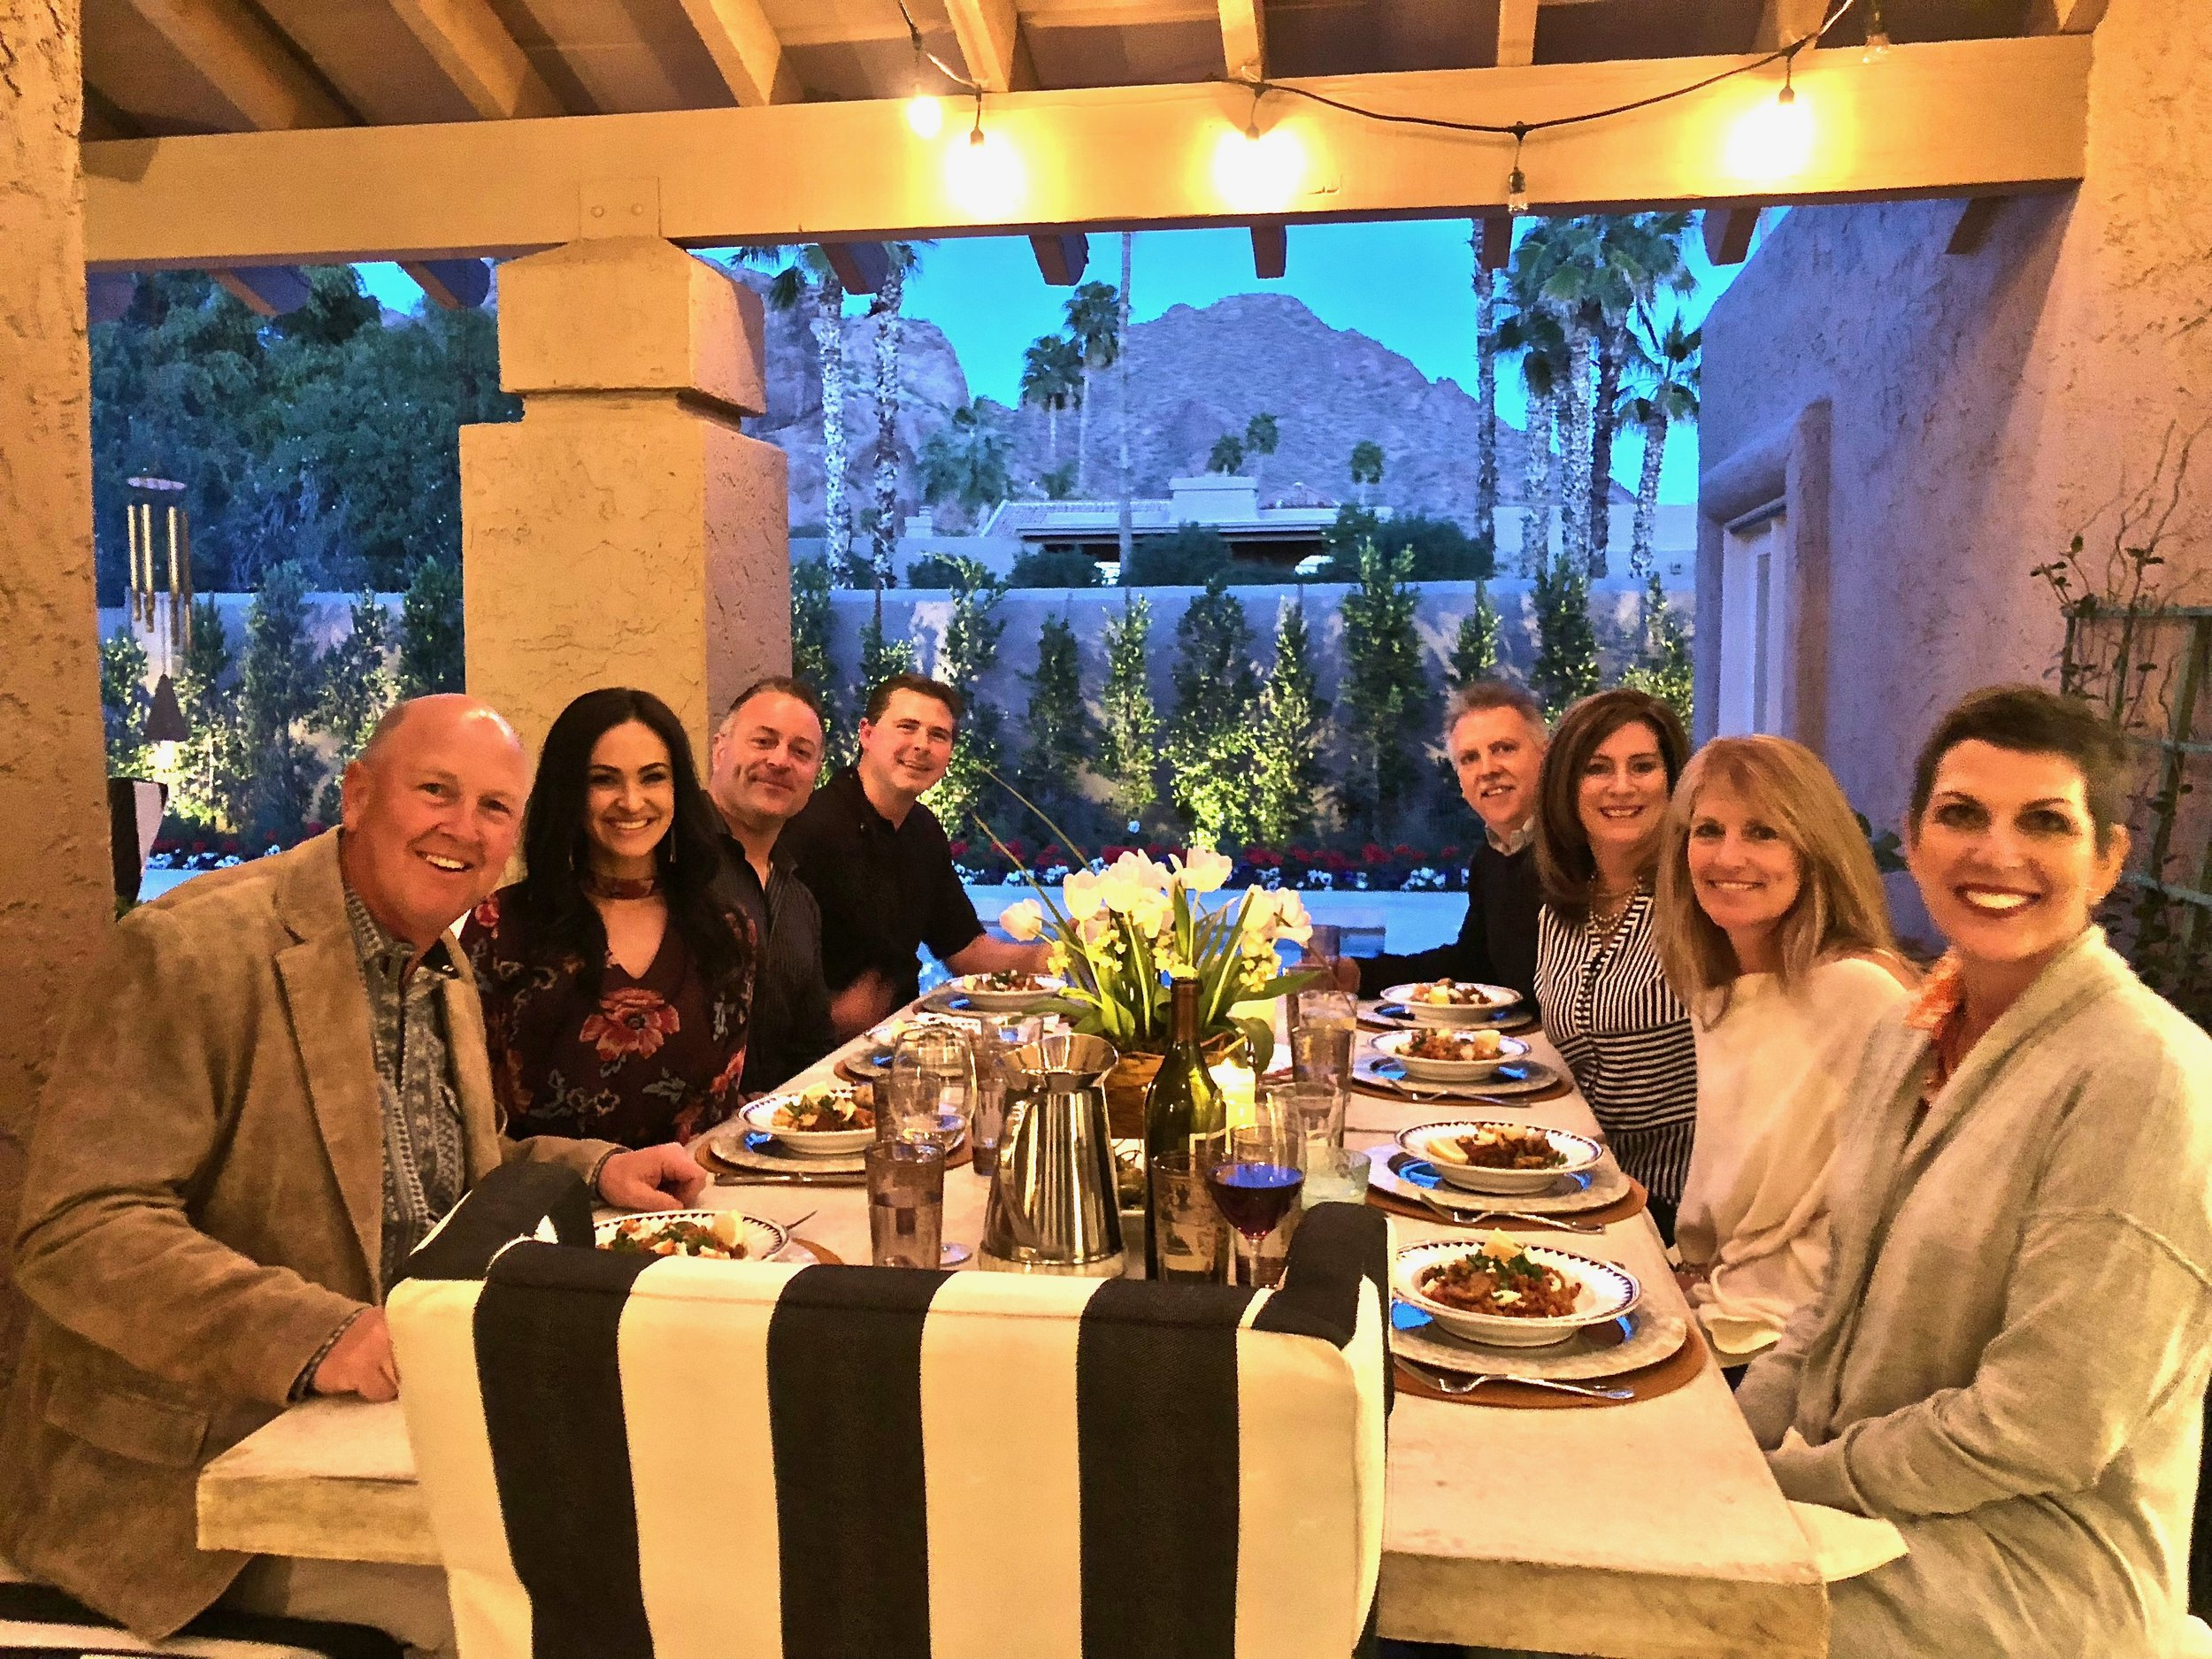 Al fresco dining with the Anderson Window execs at Casa Candelaria, March 2018